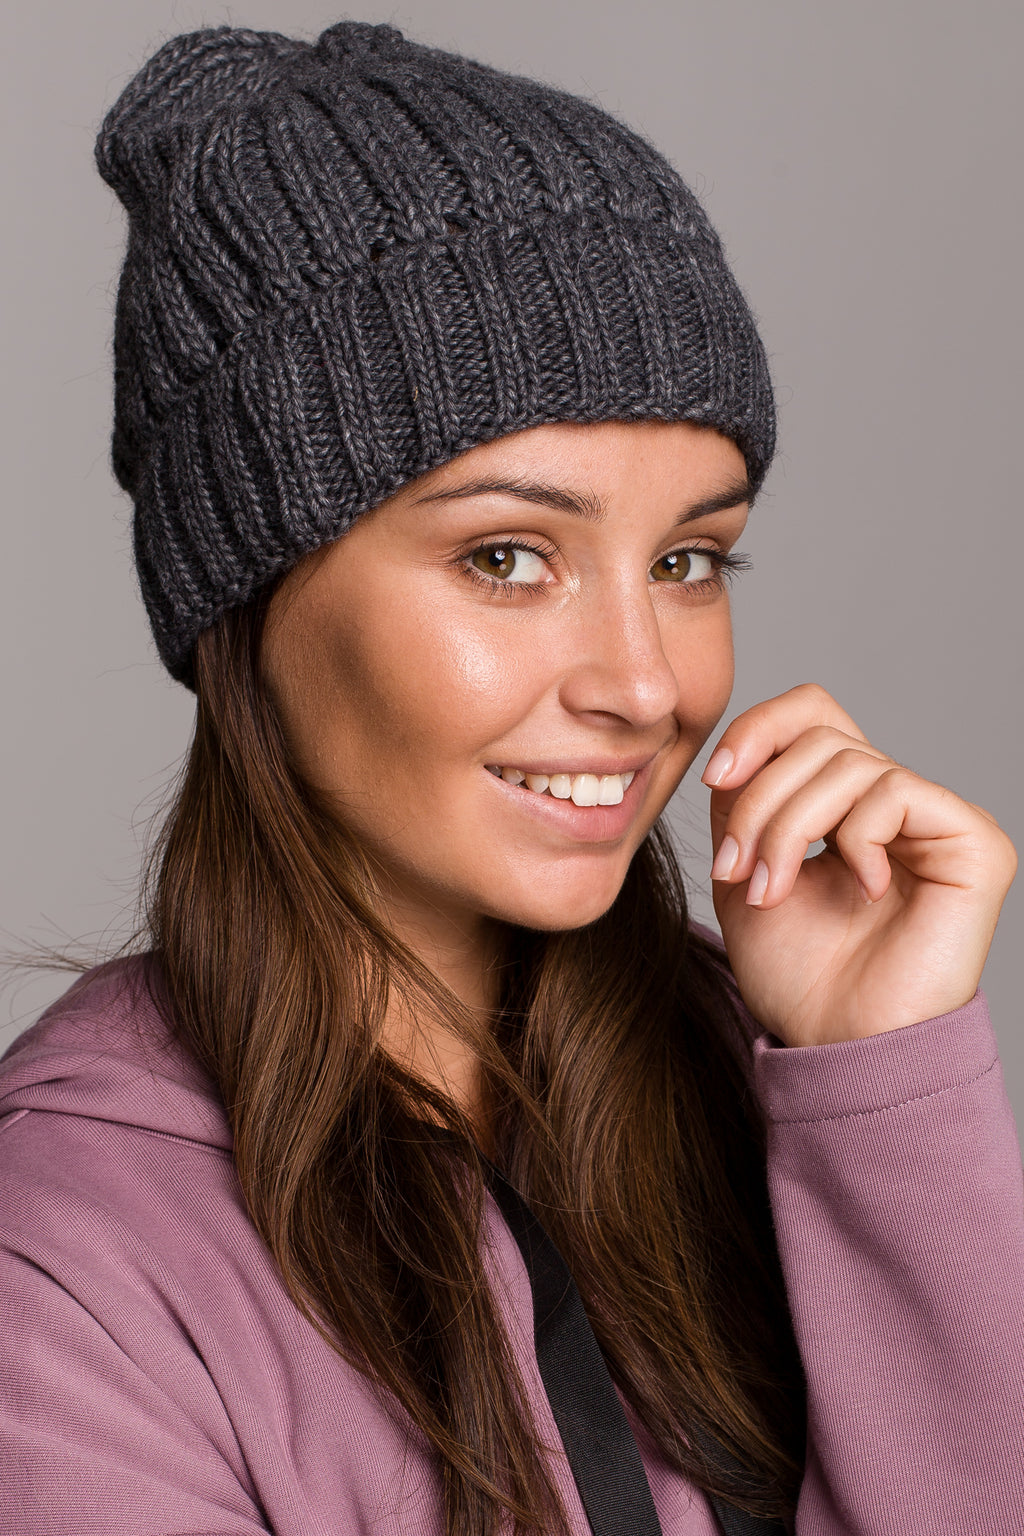 Graphite Knit Ribbed Beanie - So Chic Boutique